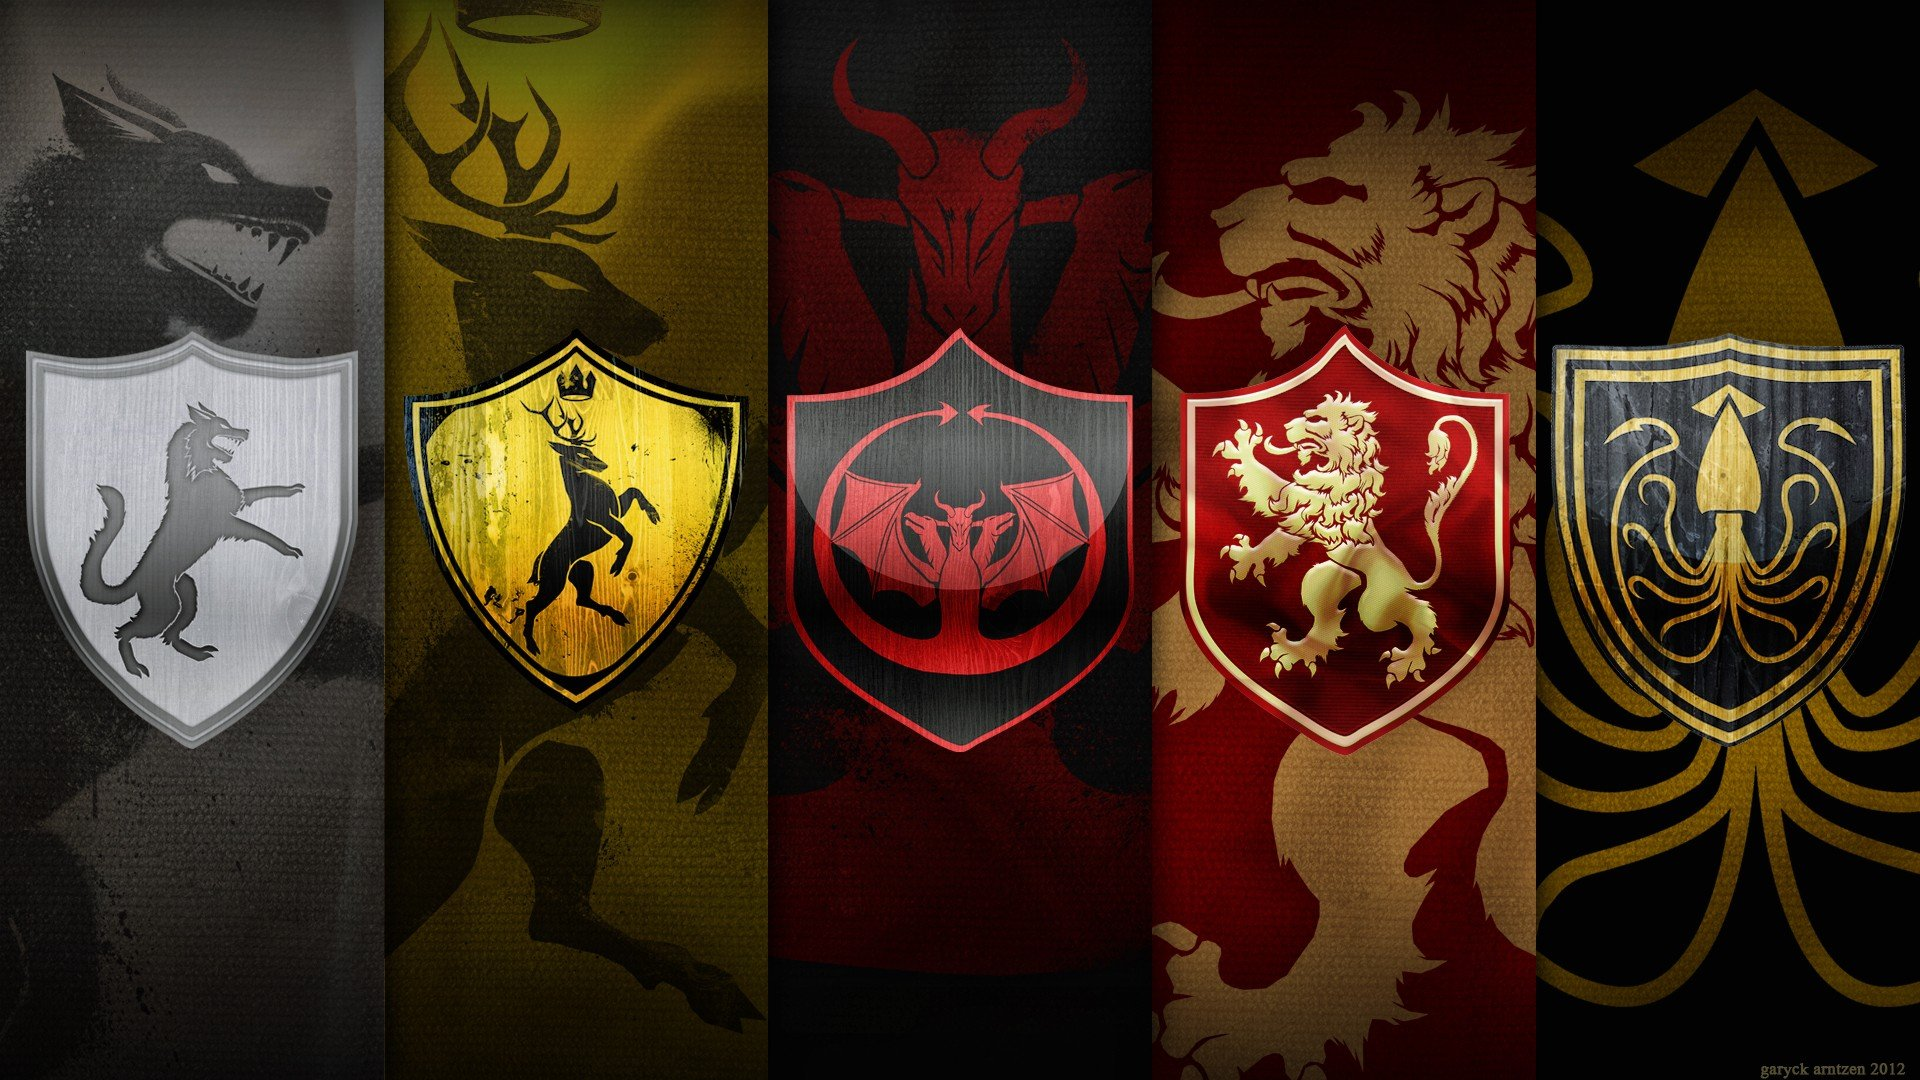 603246-a-song-of-ice-and-fire-emblems-game-of-thrones-garyck-arntzen-house-house-baratheon-house-greyjoy-house-lanniste